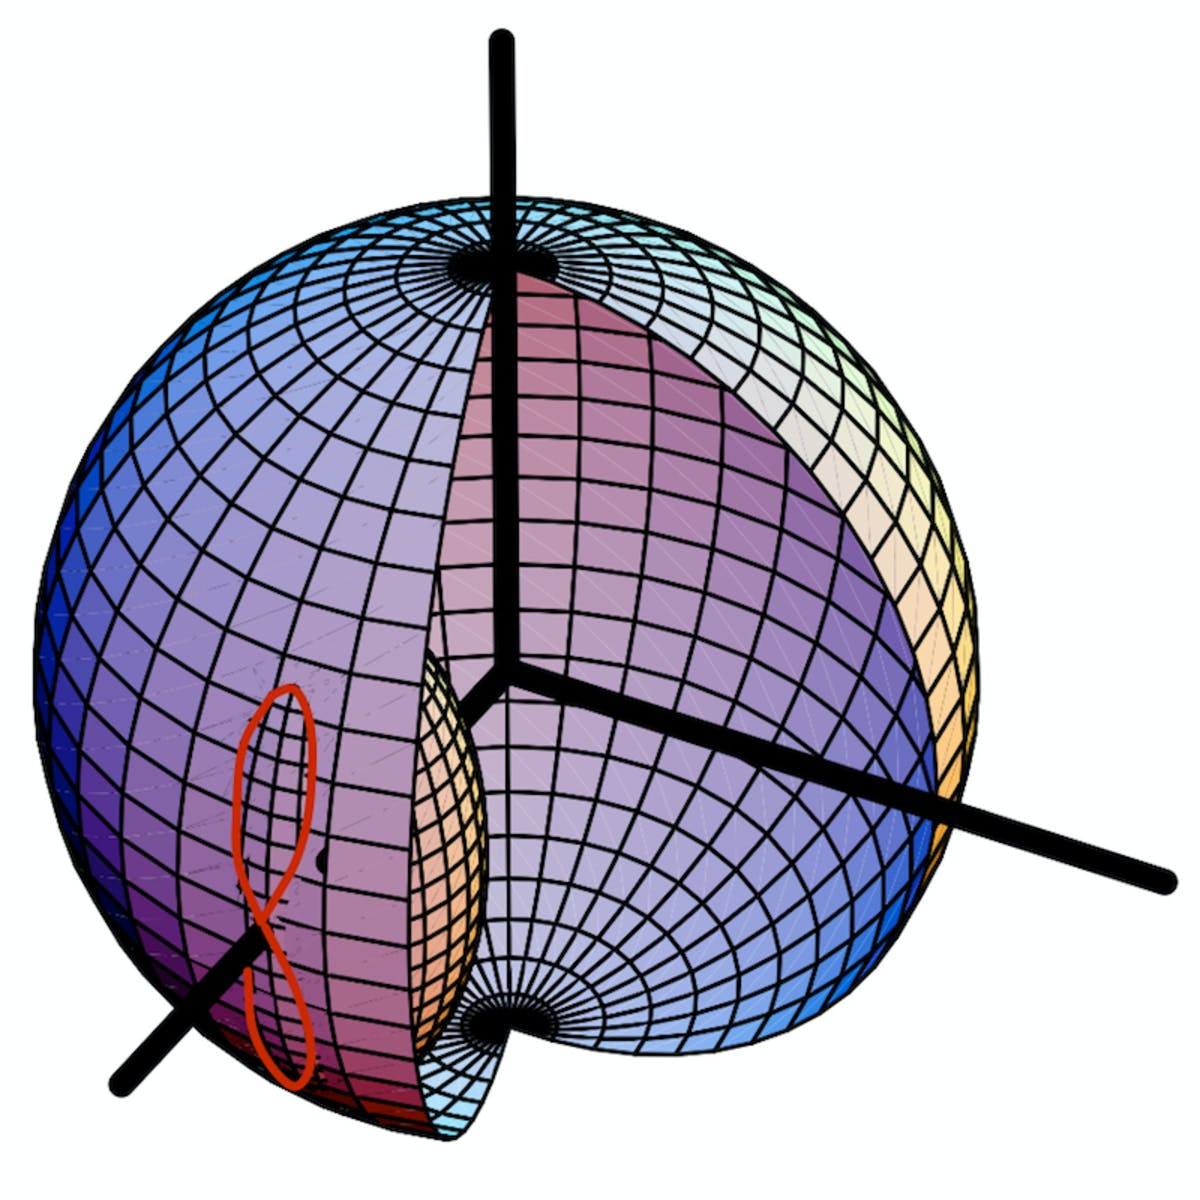 Kinetics: Studying Spacecraft Motion